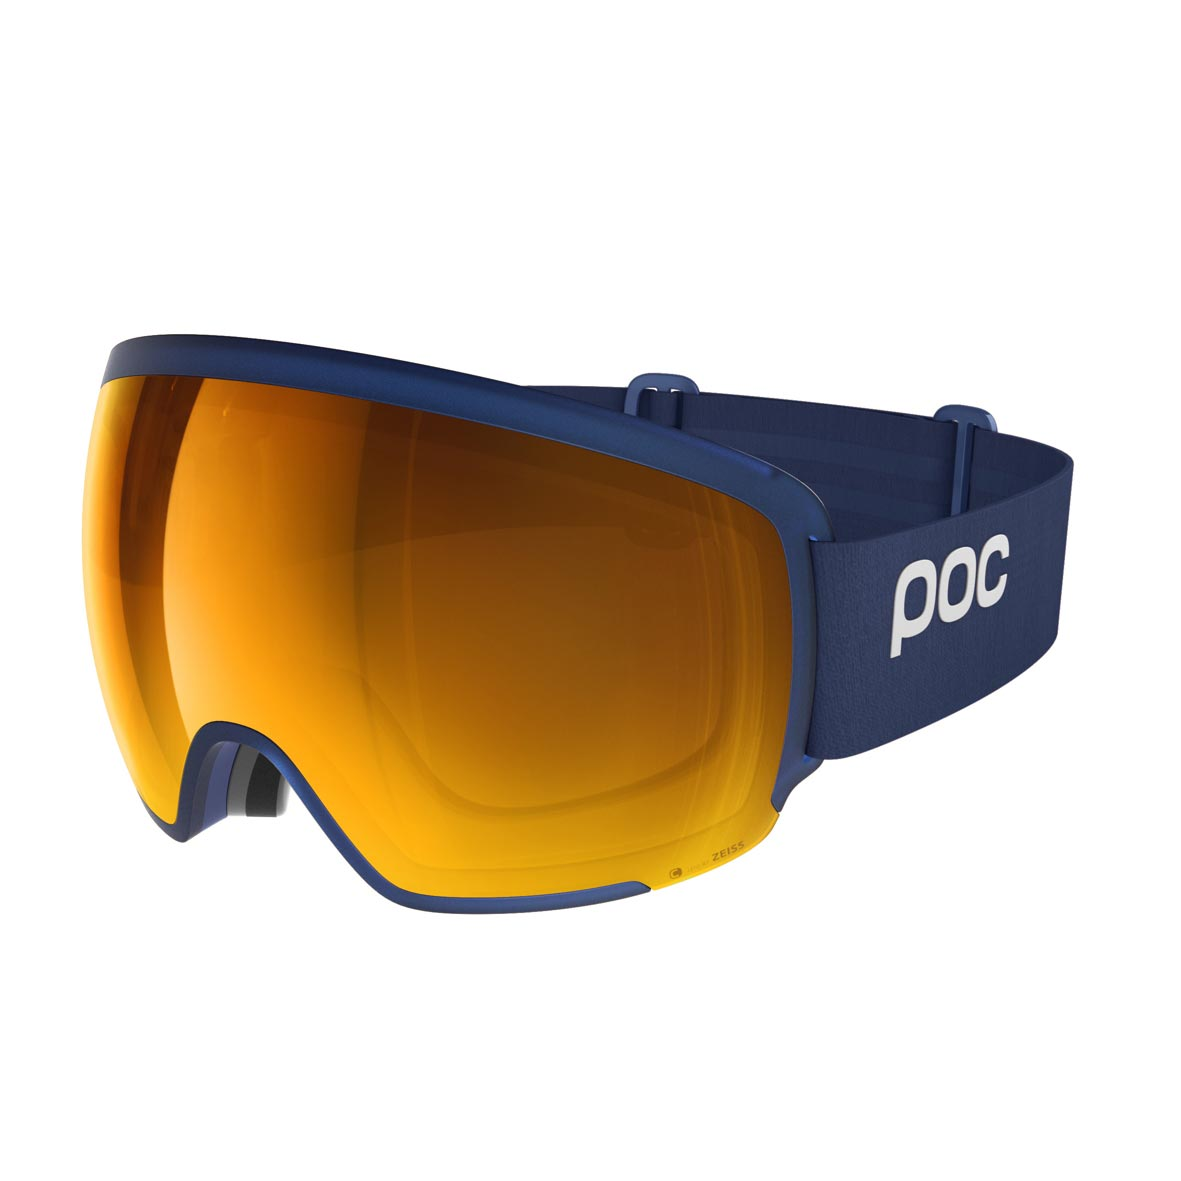 POC Orb Clarity Goggle 17/18